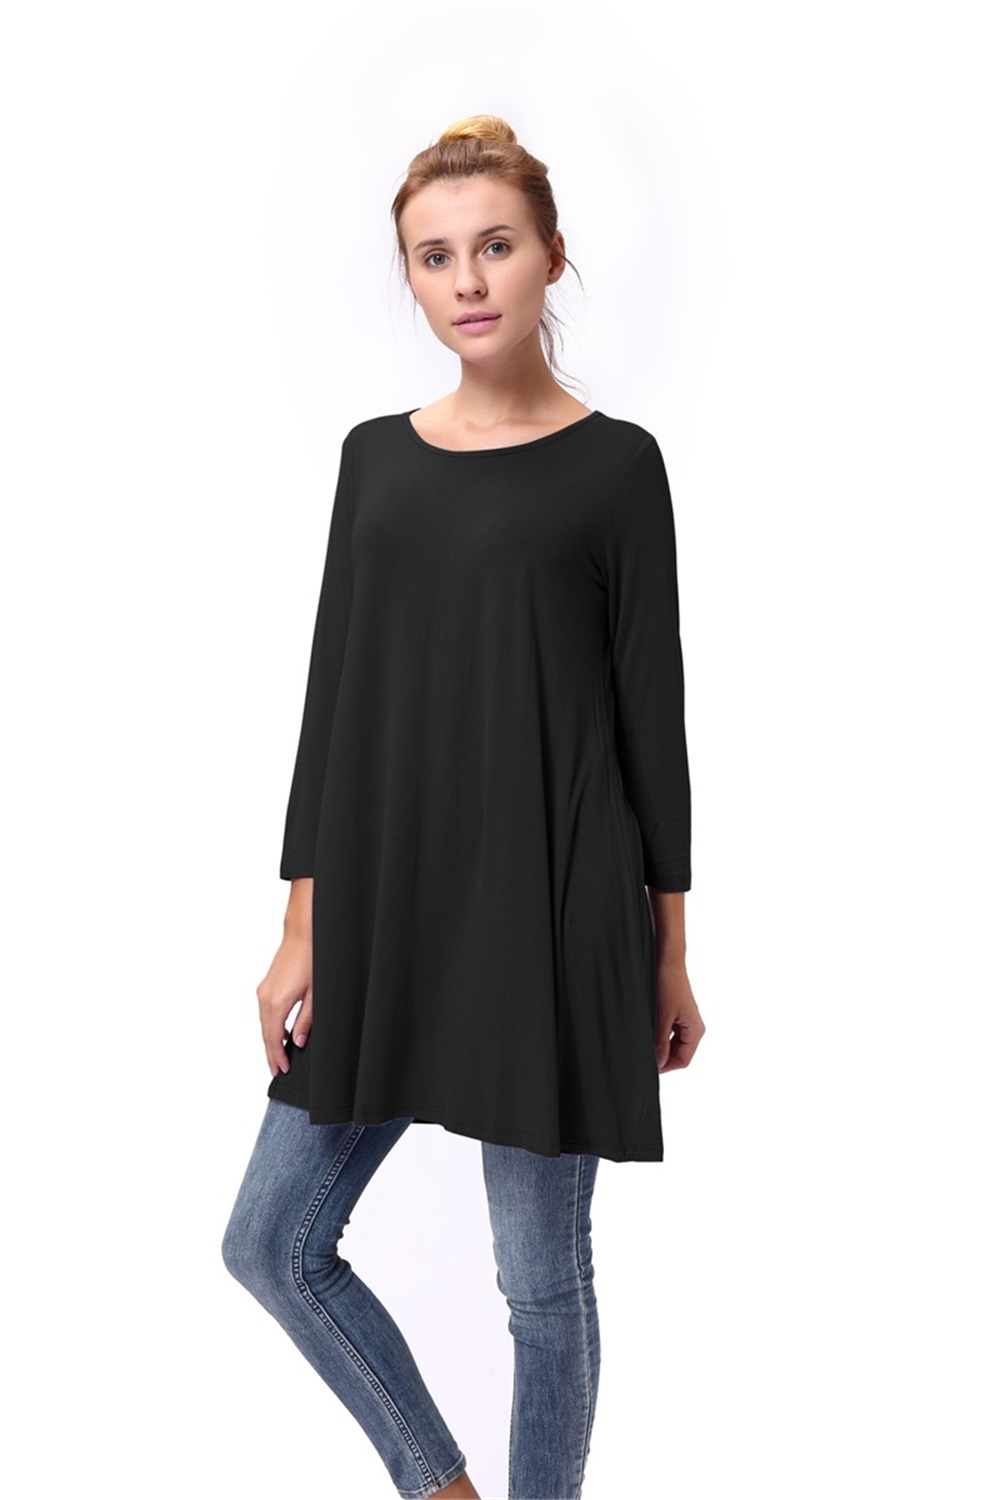 Women-039-s-Long-Tunic-Top-3-4-Sleeve-Dolman-Boat-Neck-USA-Dress-S-M-L-1X-2X-3X-PLUS thumbnail 13